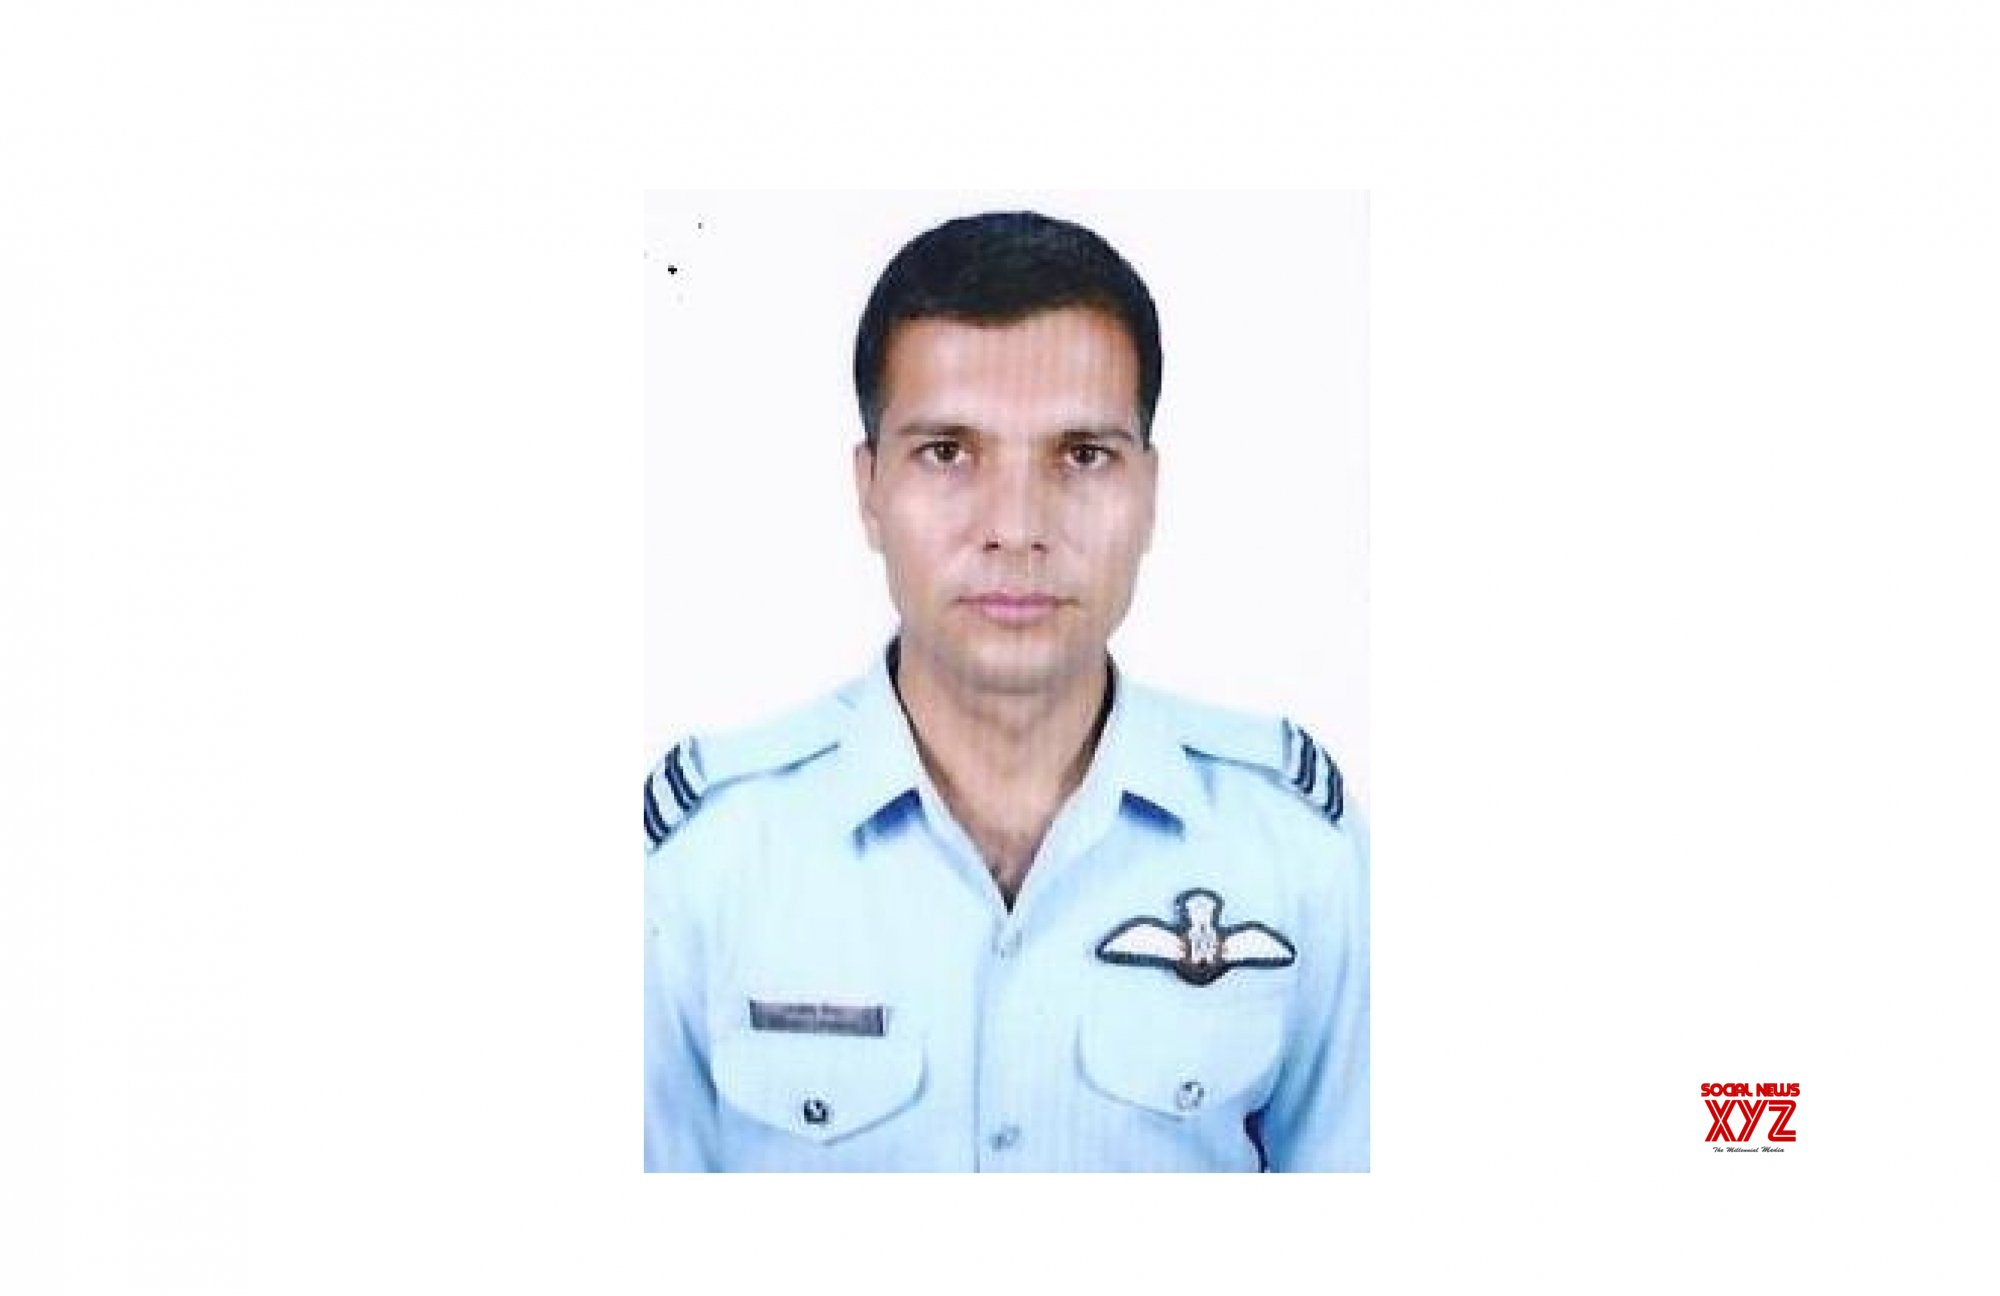 New Delhi: Persons killed in An - 32 aircraft crash #Gallery